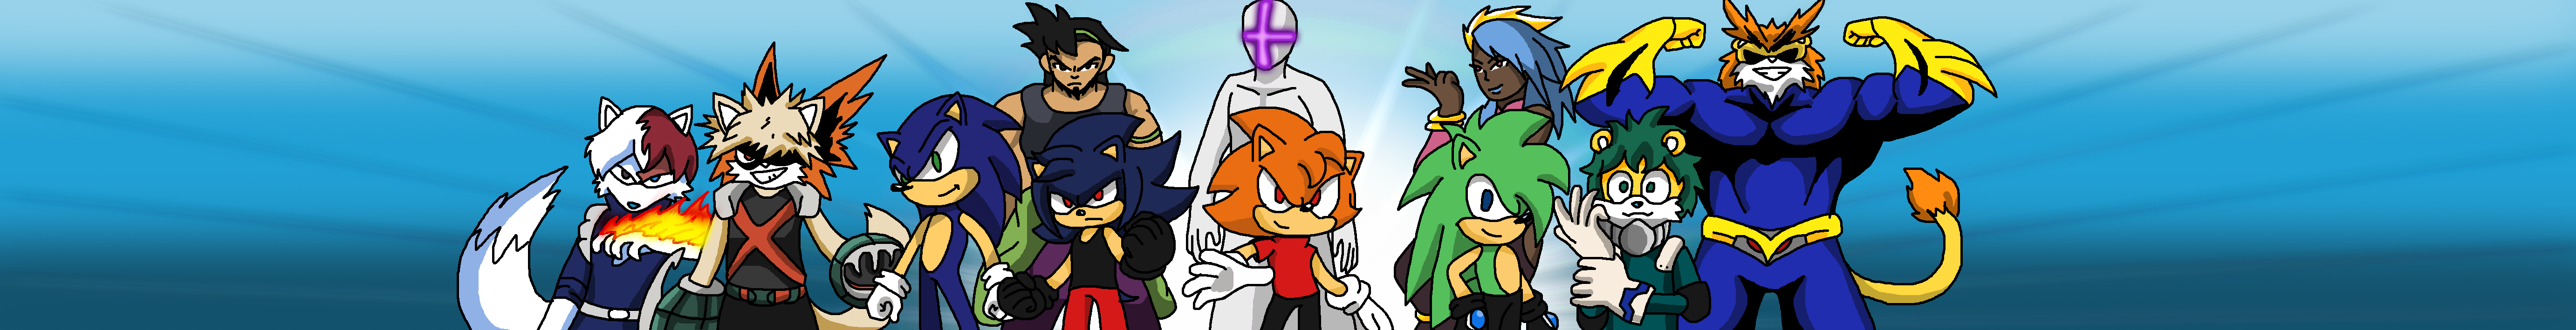 cosmic_tale_banner_2.png